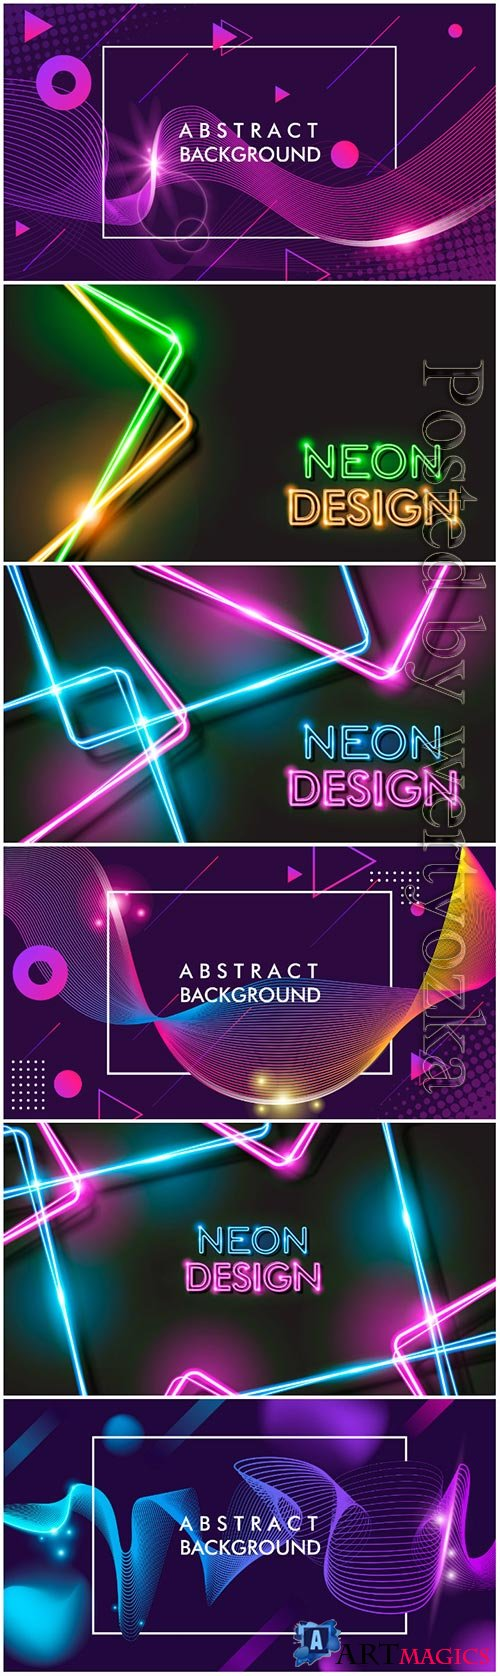 Abstract glowing neon black background design premium vector